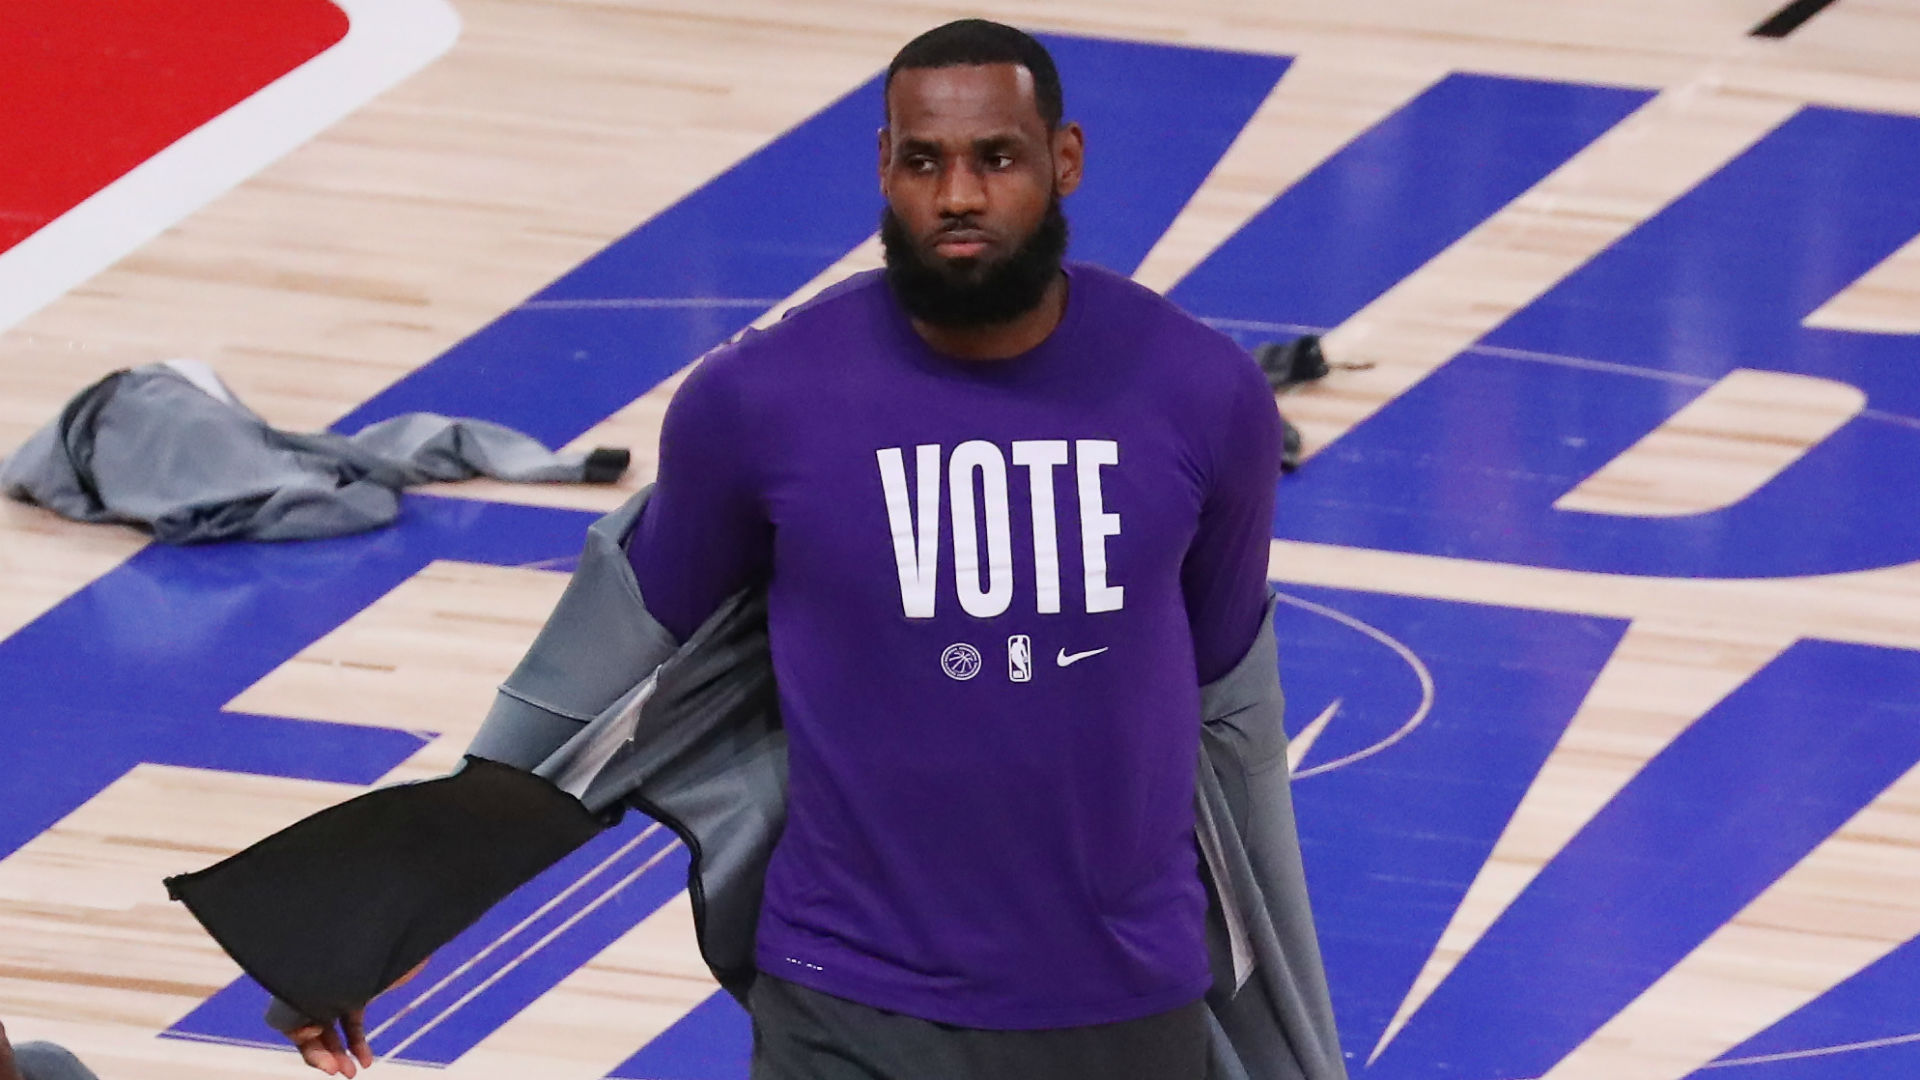 LeBron James wants 'accountability' for officer who killed Ma'Khia Bryant; Lakers star tweets 'You're next'